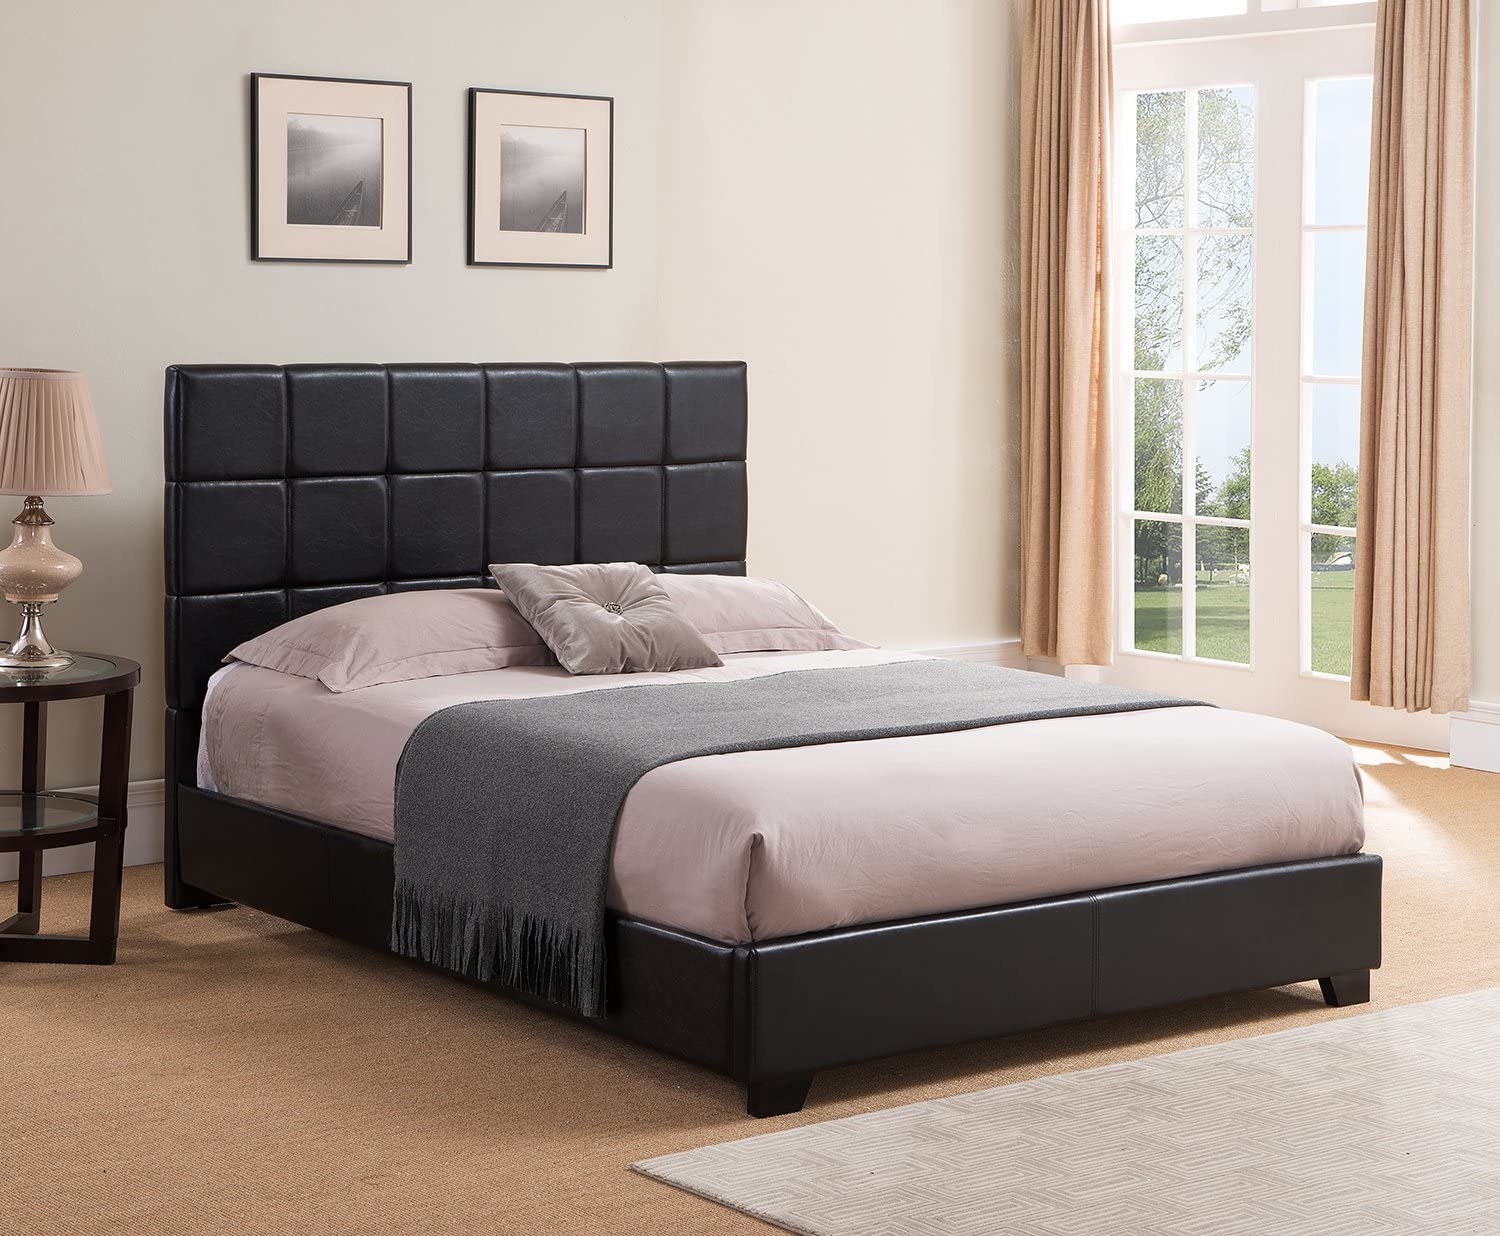 Best King Size Bed Frame With Headboard 2020 Amp Top Reviews